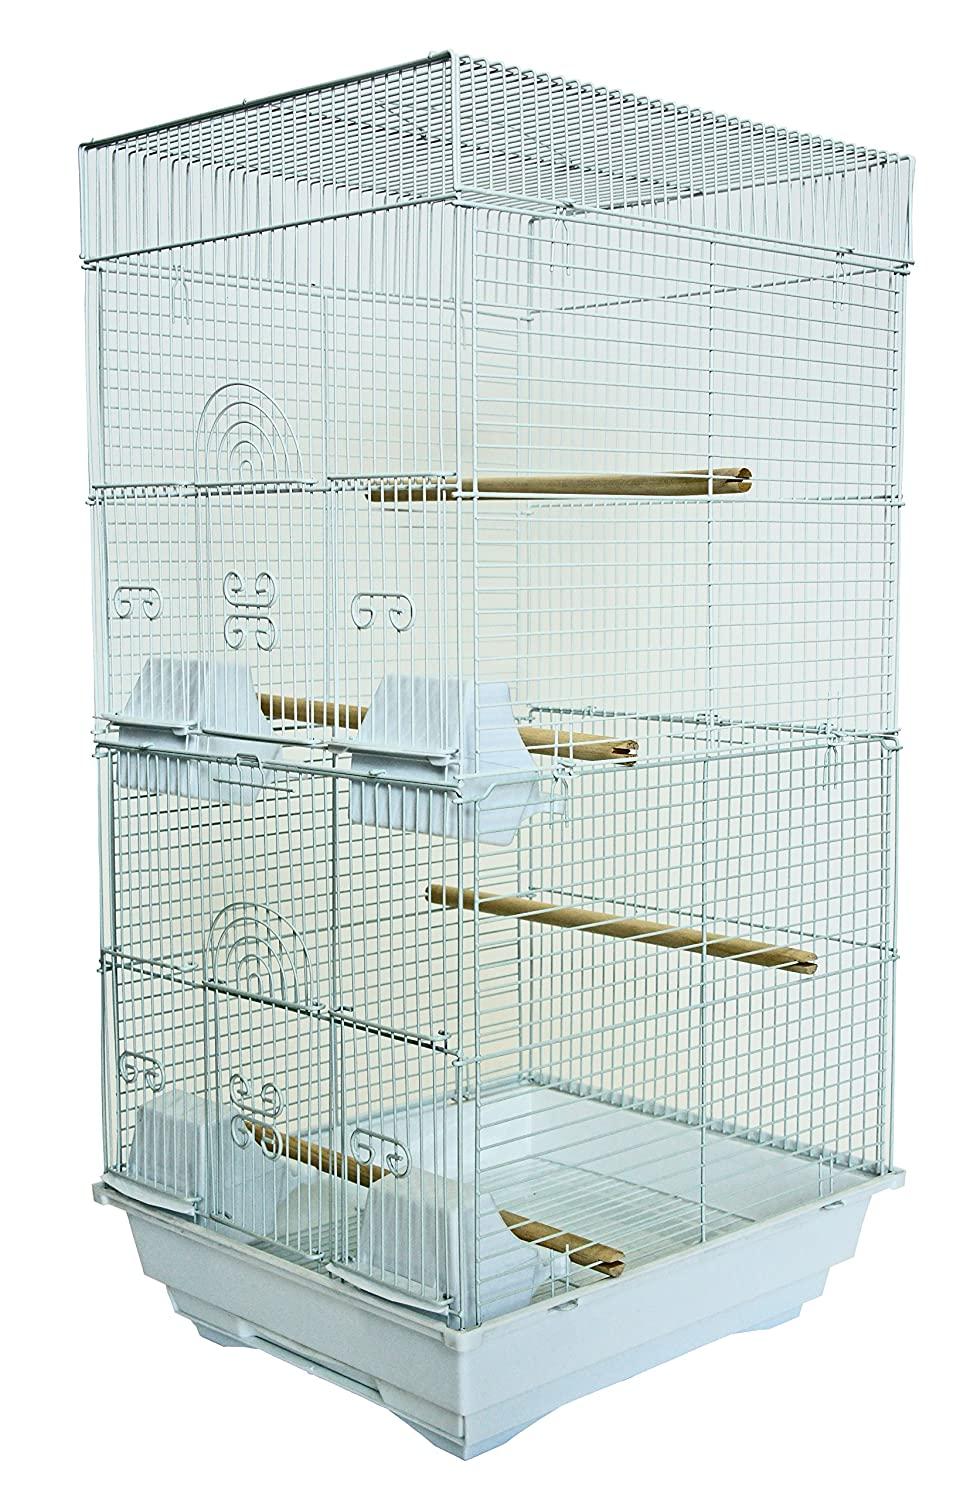 YML A6624 Bar Spacing Tall Square 4 Perchs Bird Cage, 14 by 16-Inch, White A6624WHT